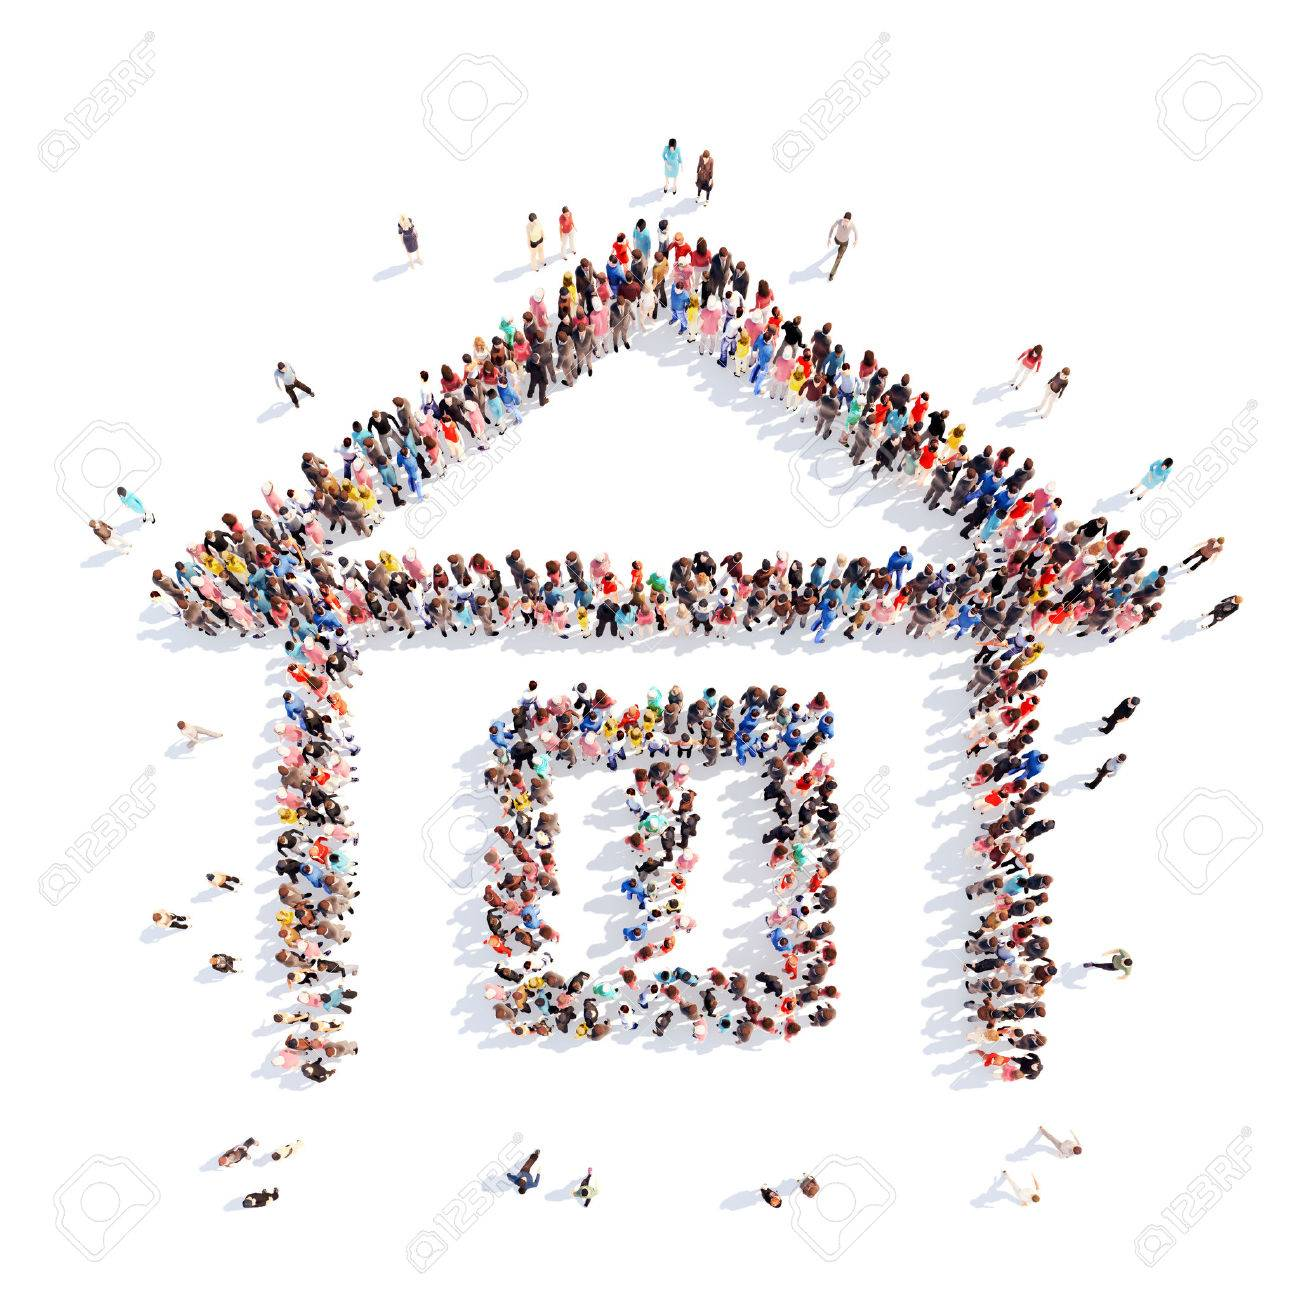 A large group of people in the shape of a house. White background. - 39494234